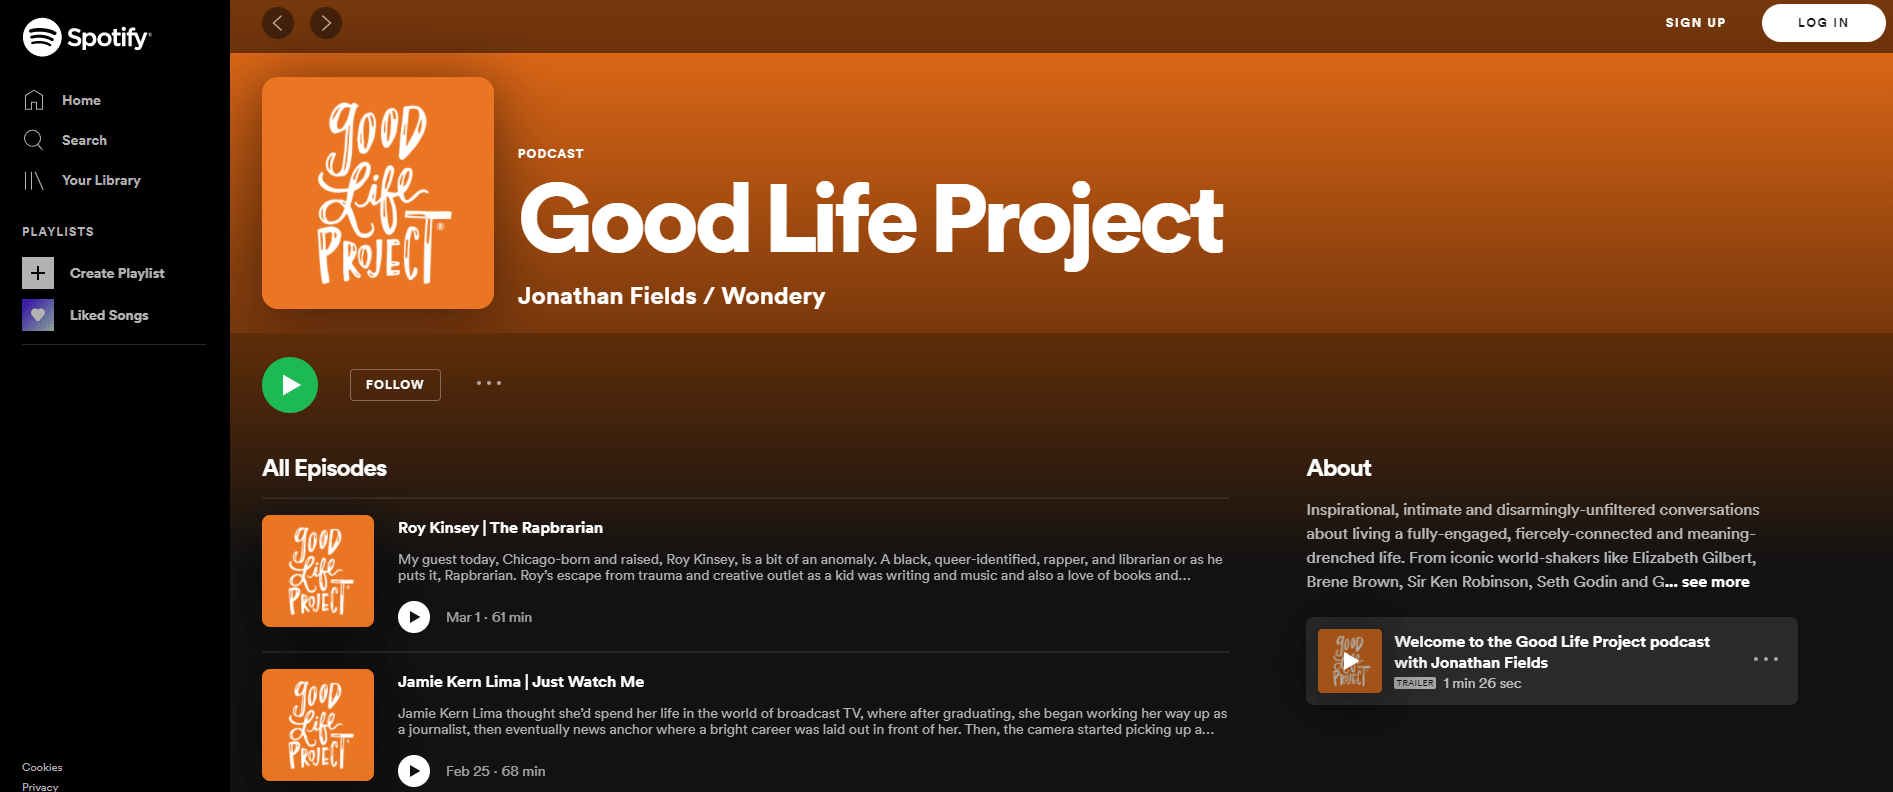 The Good Life Project